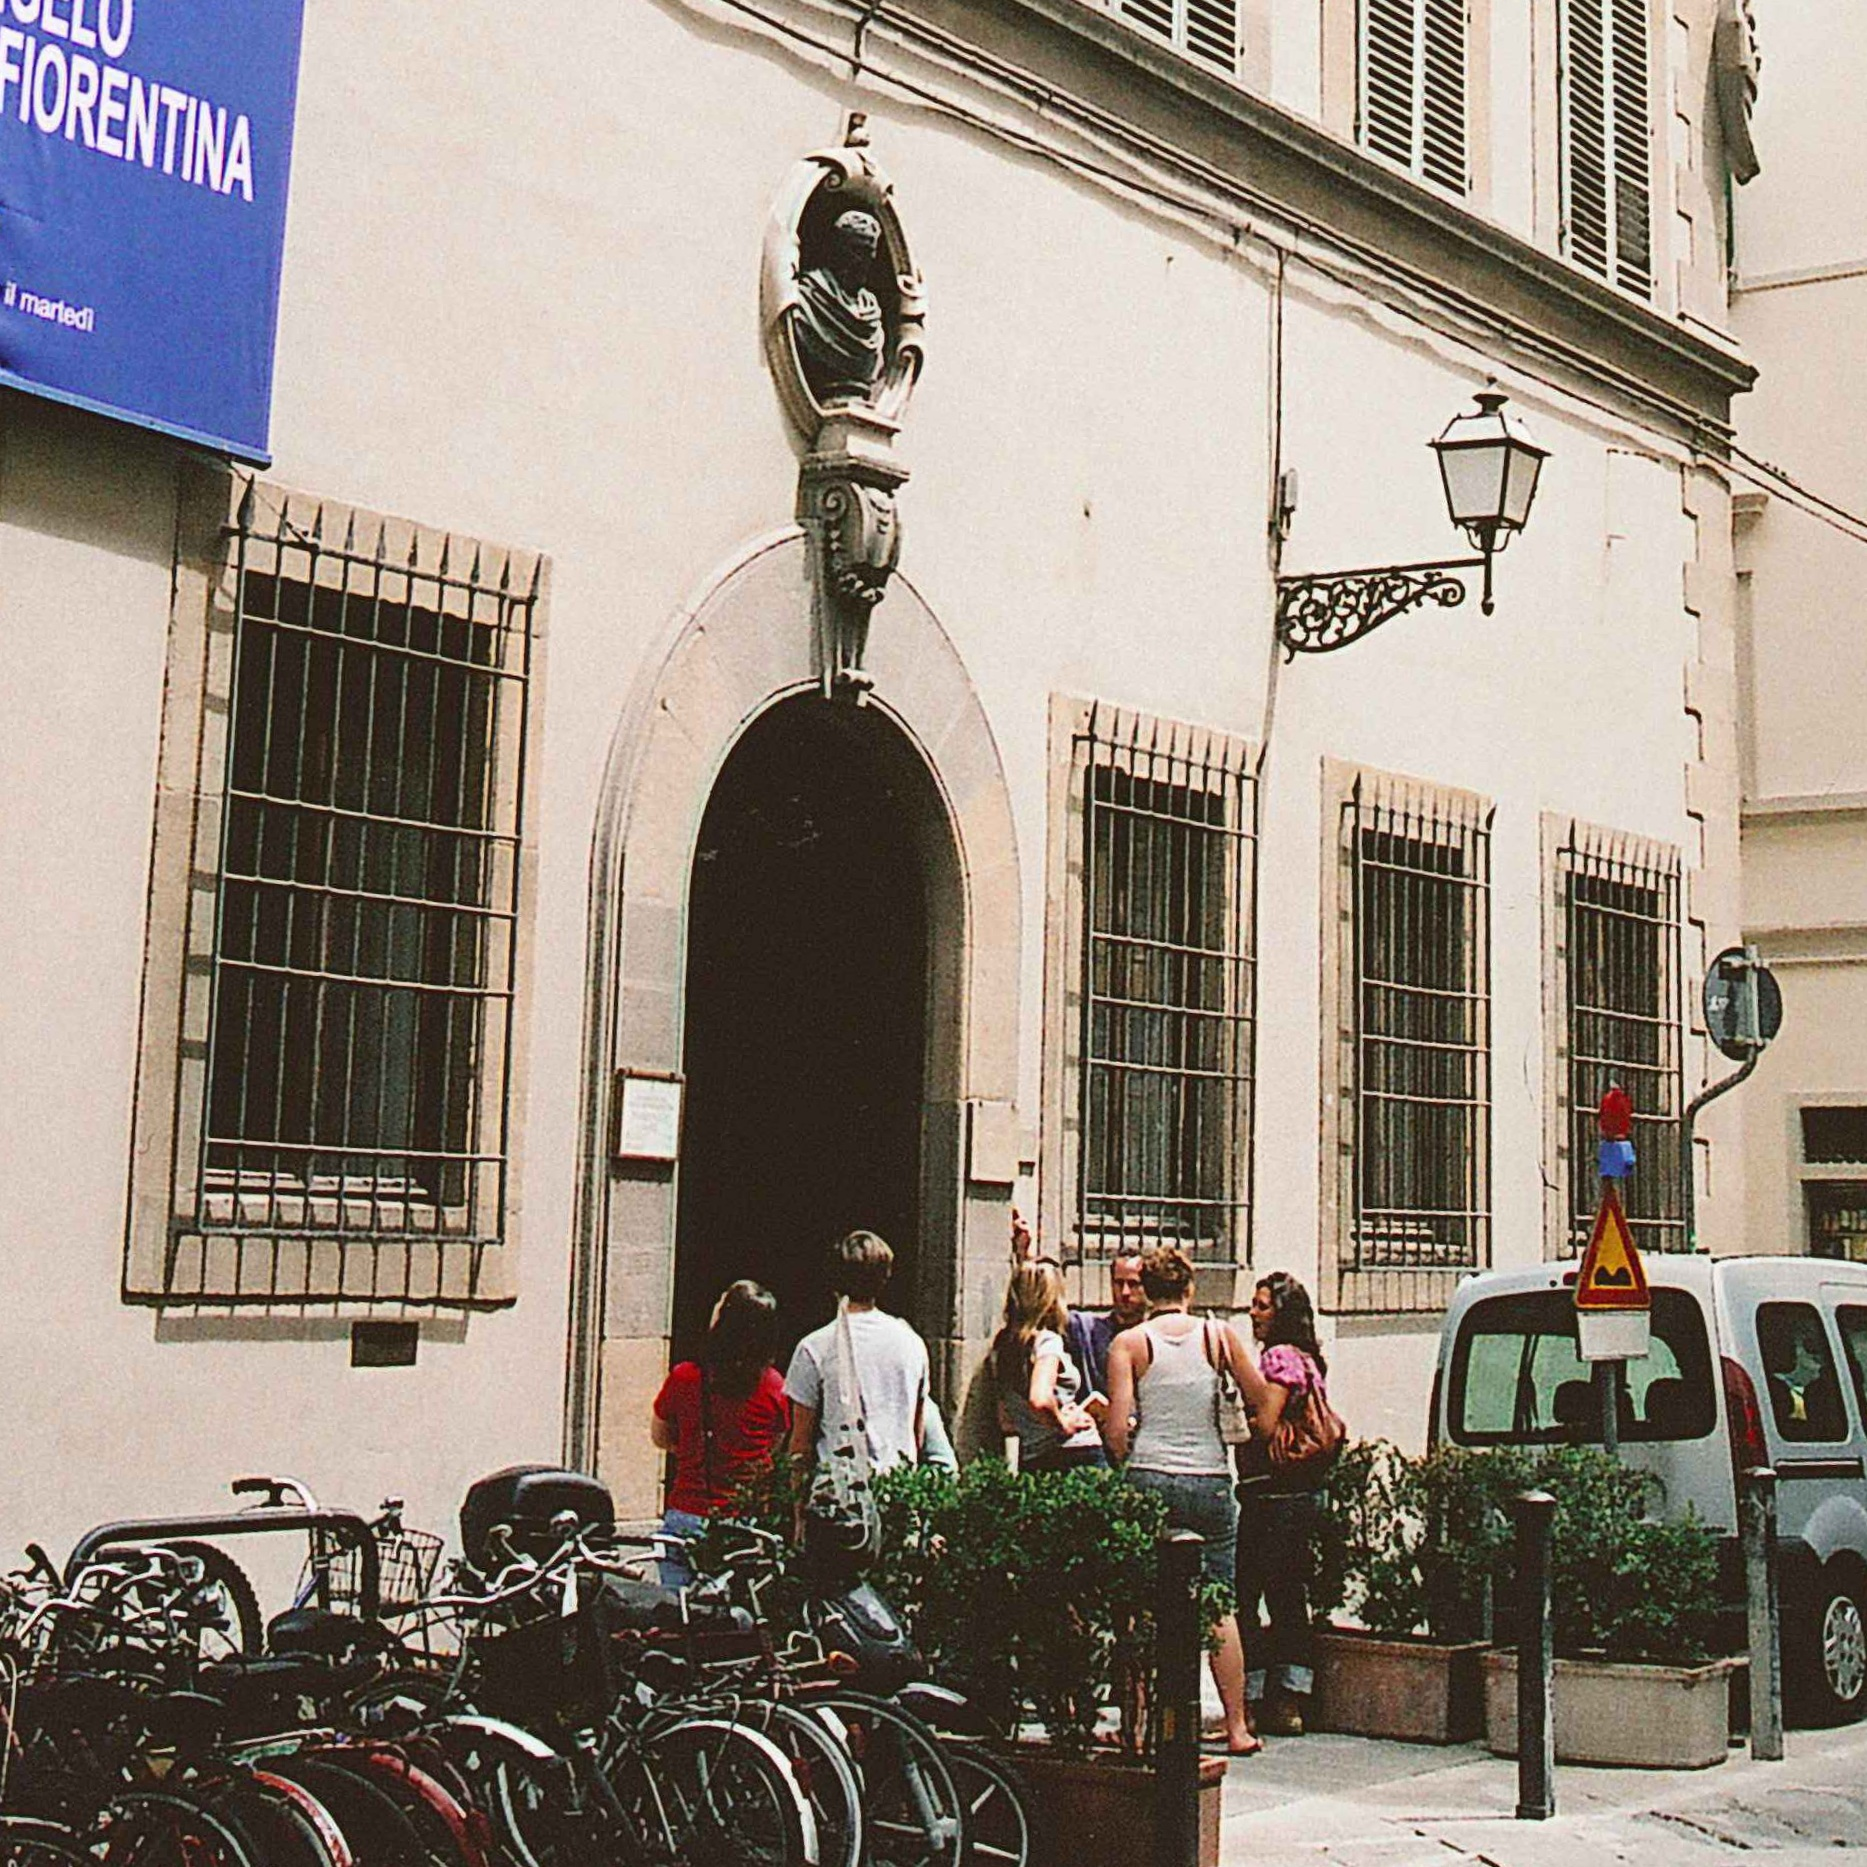 Casa Buonarroti, a small museum dedicated to Michelangelo's early works